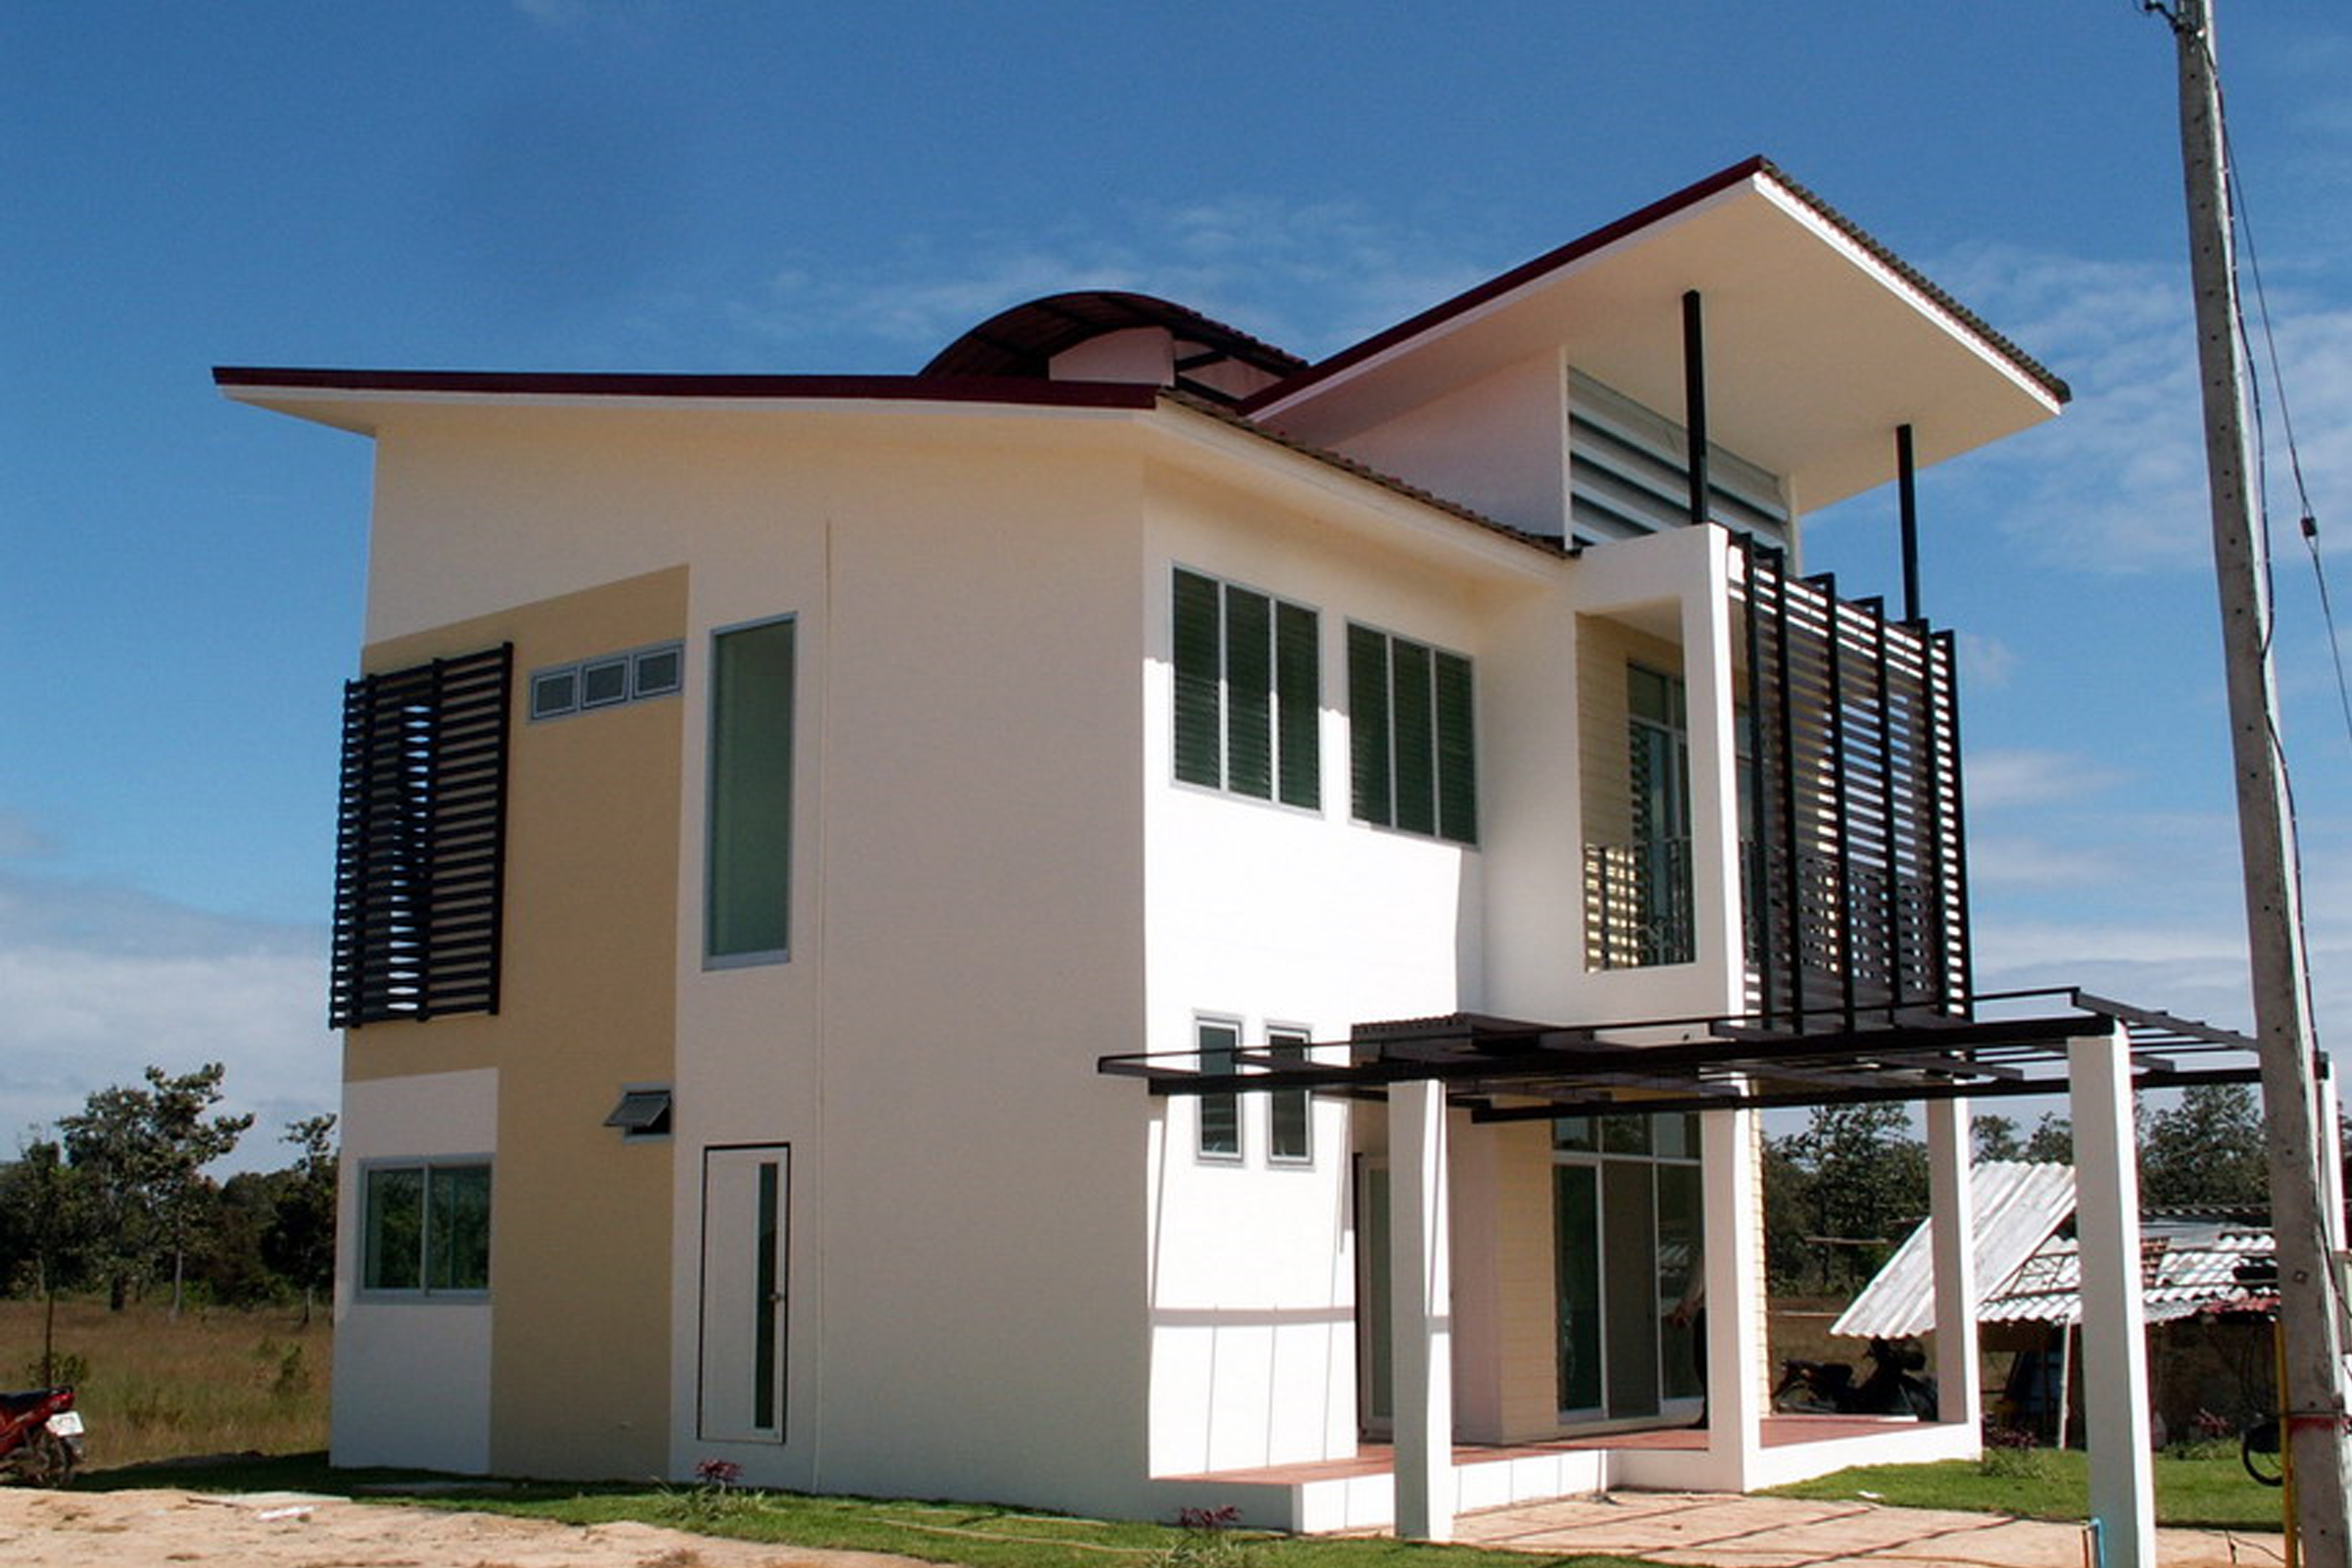 Natural Ventilation Design For Houses In Thailand House